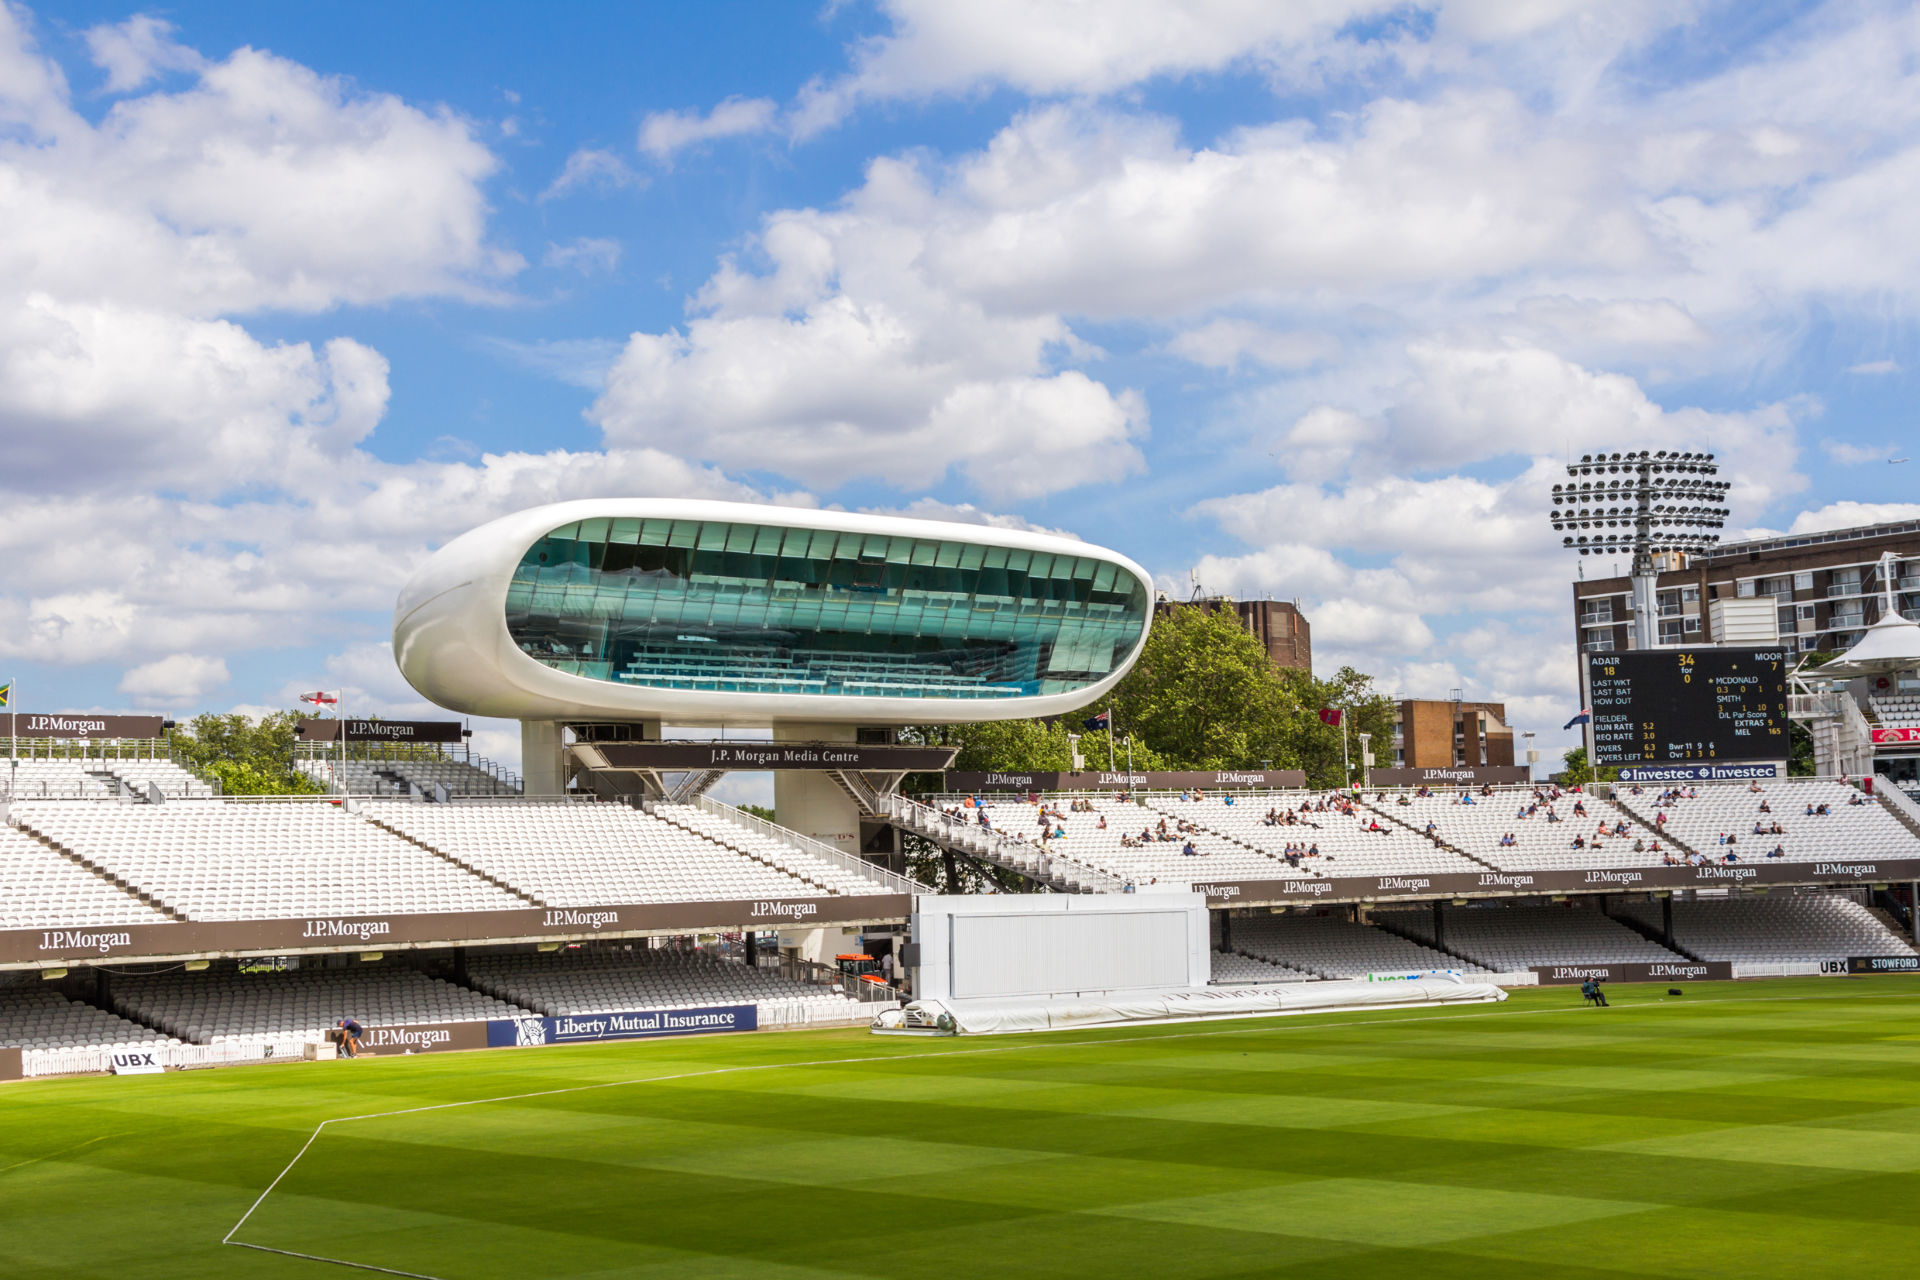 Lord's Venues